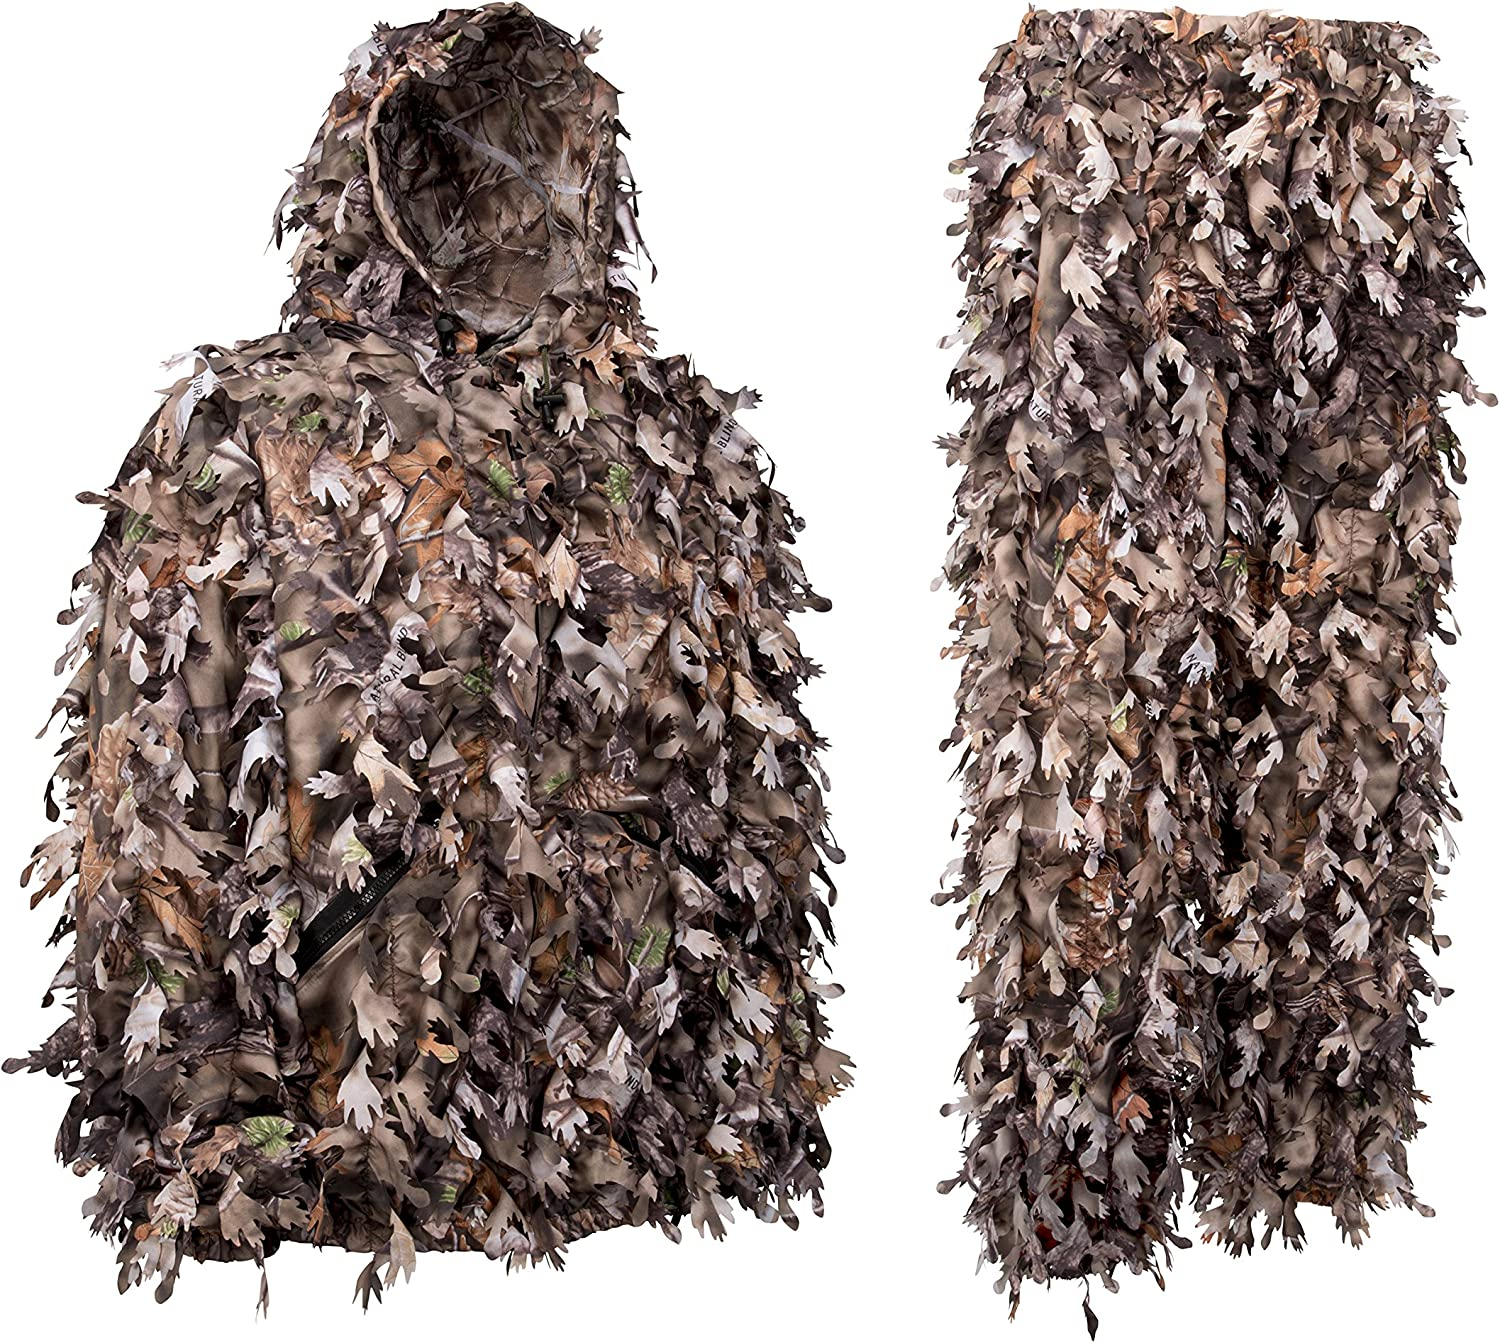 North depot Mountain Gear Woodland Camo Ghillie Zipp with New item Leaf Suit 3D